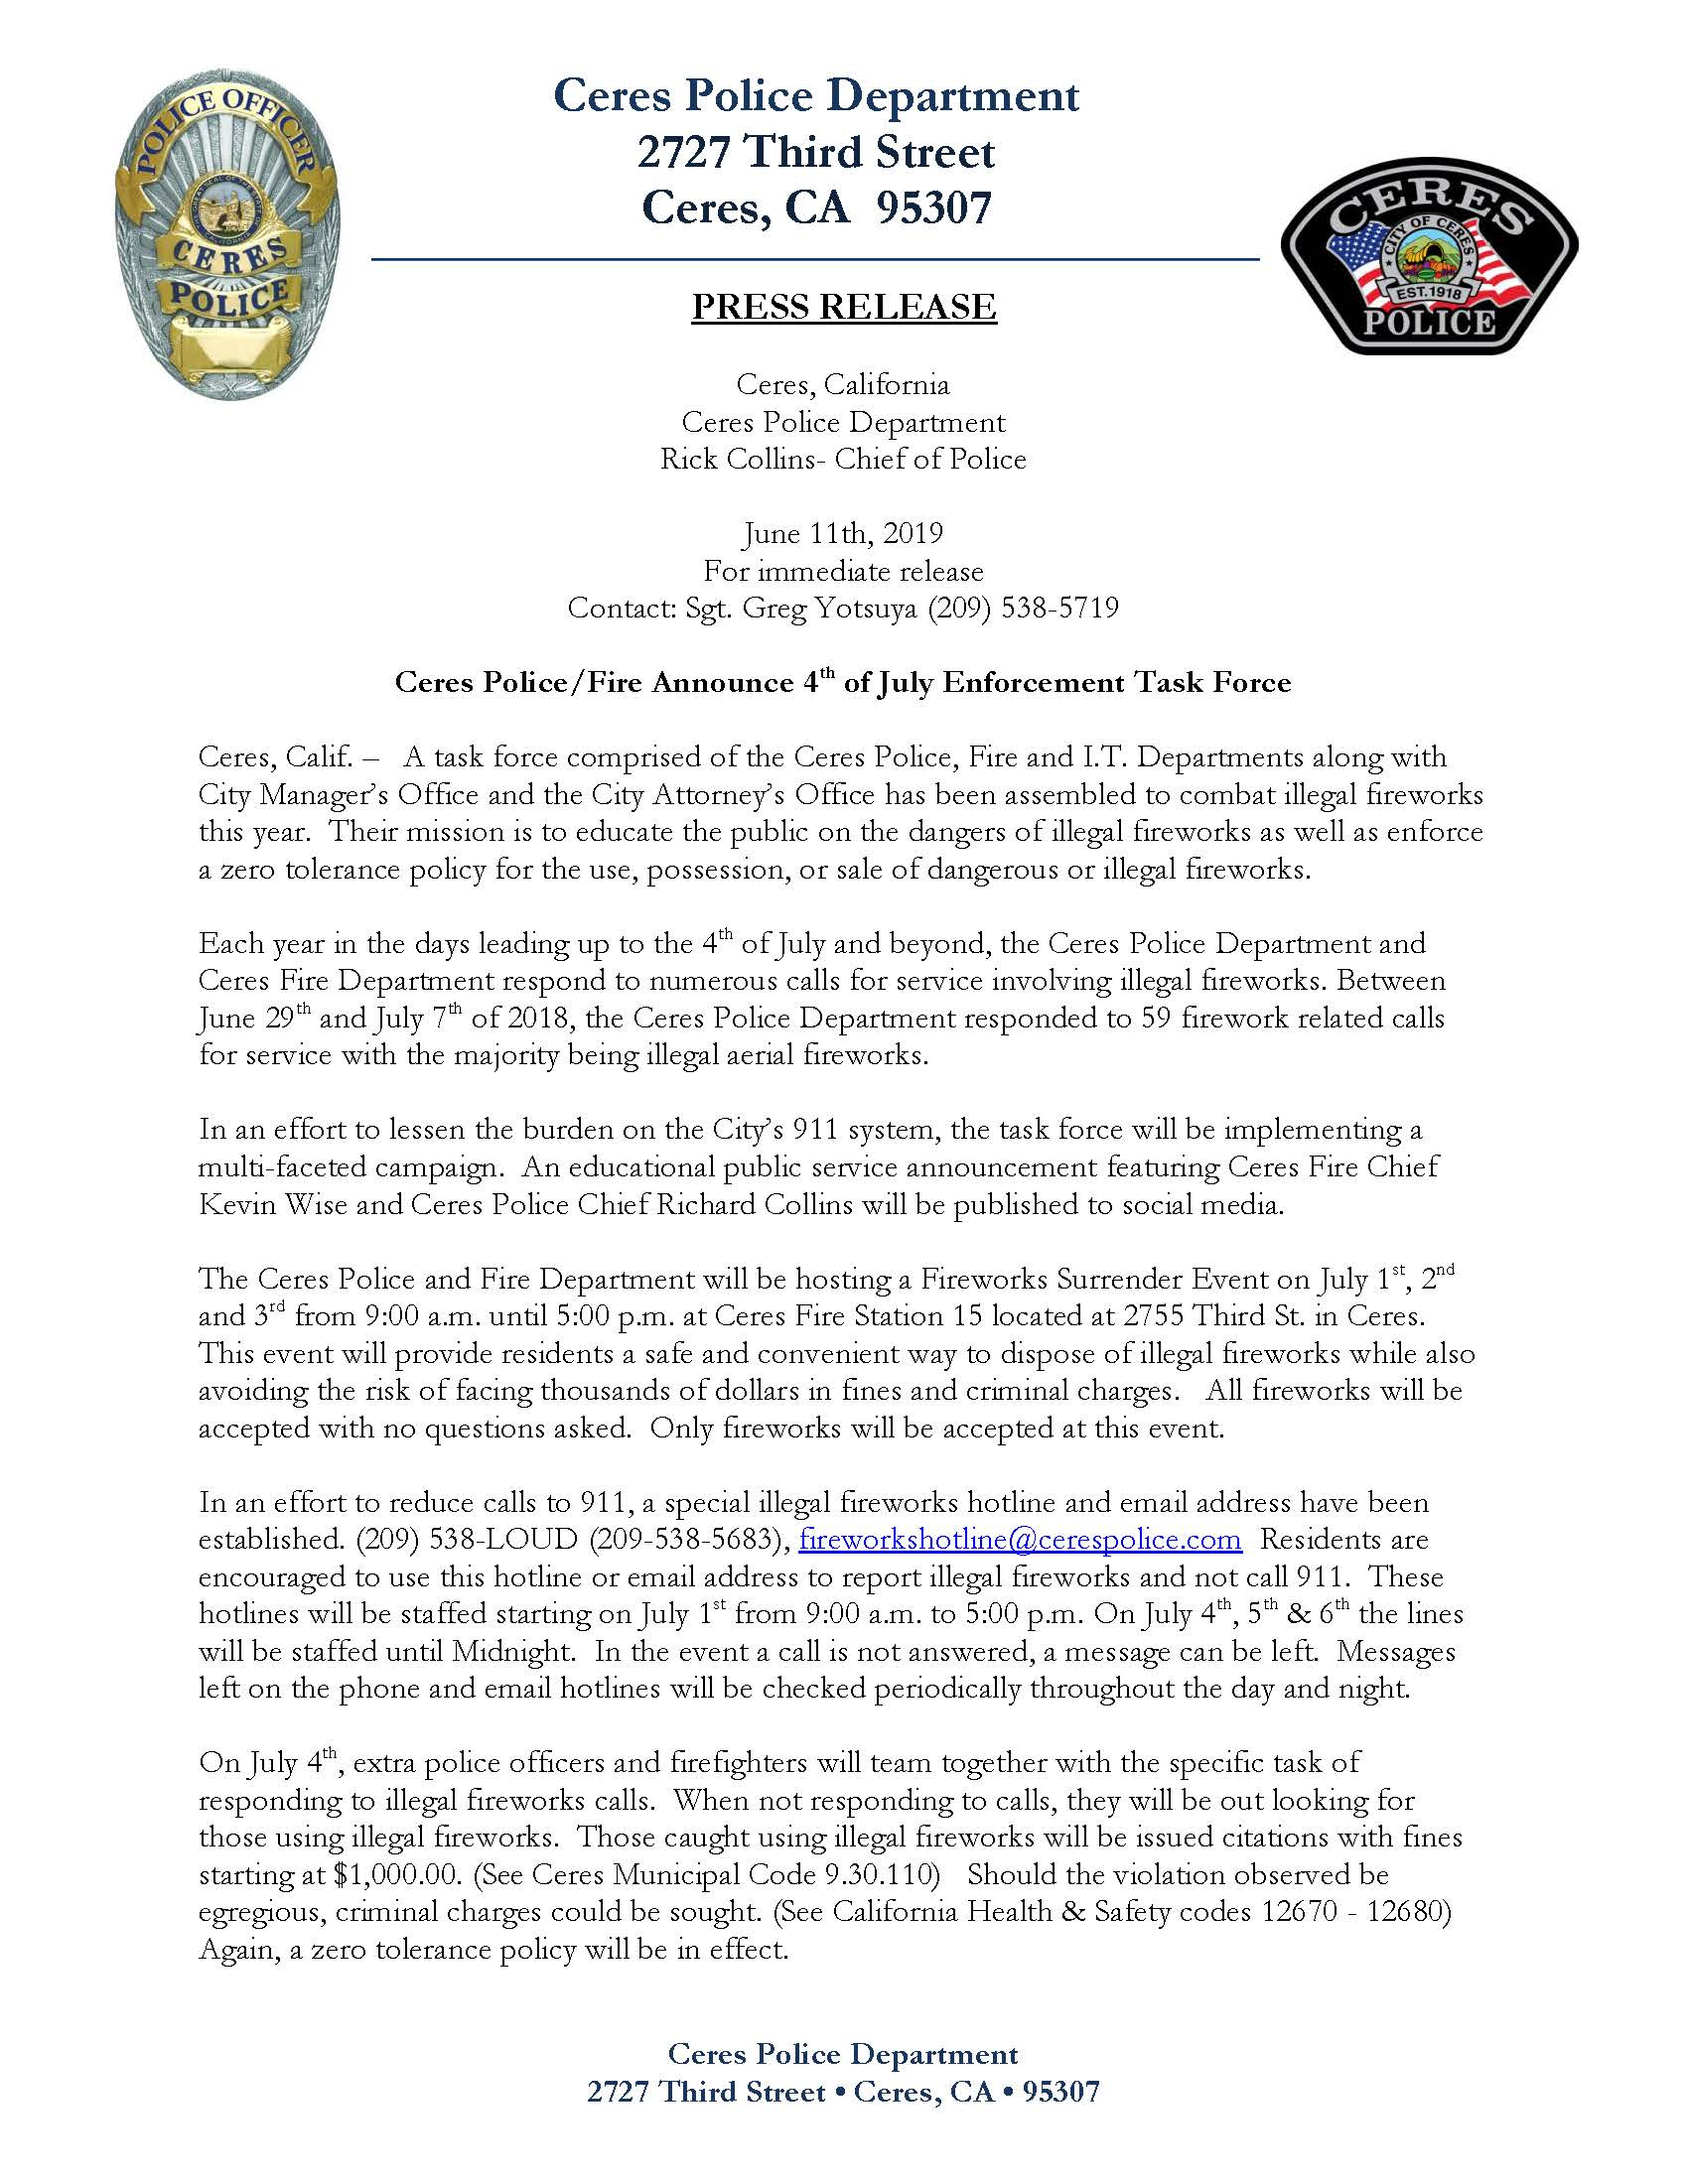 5-30-19 Press Release, 4th of July Task Force